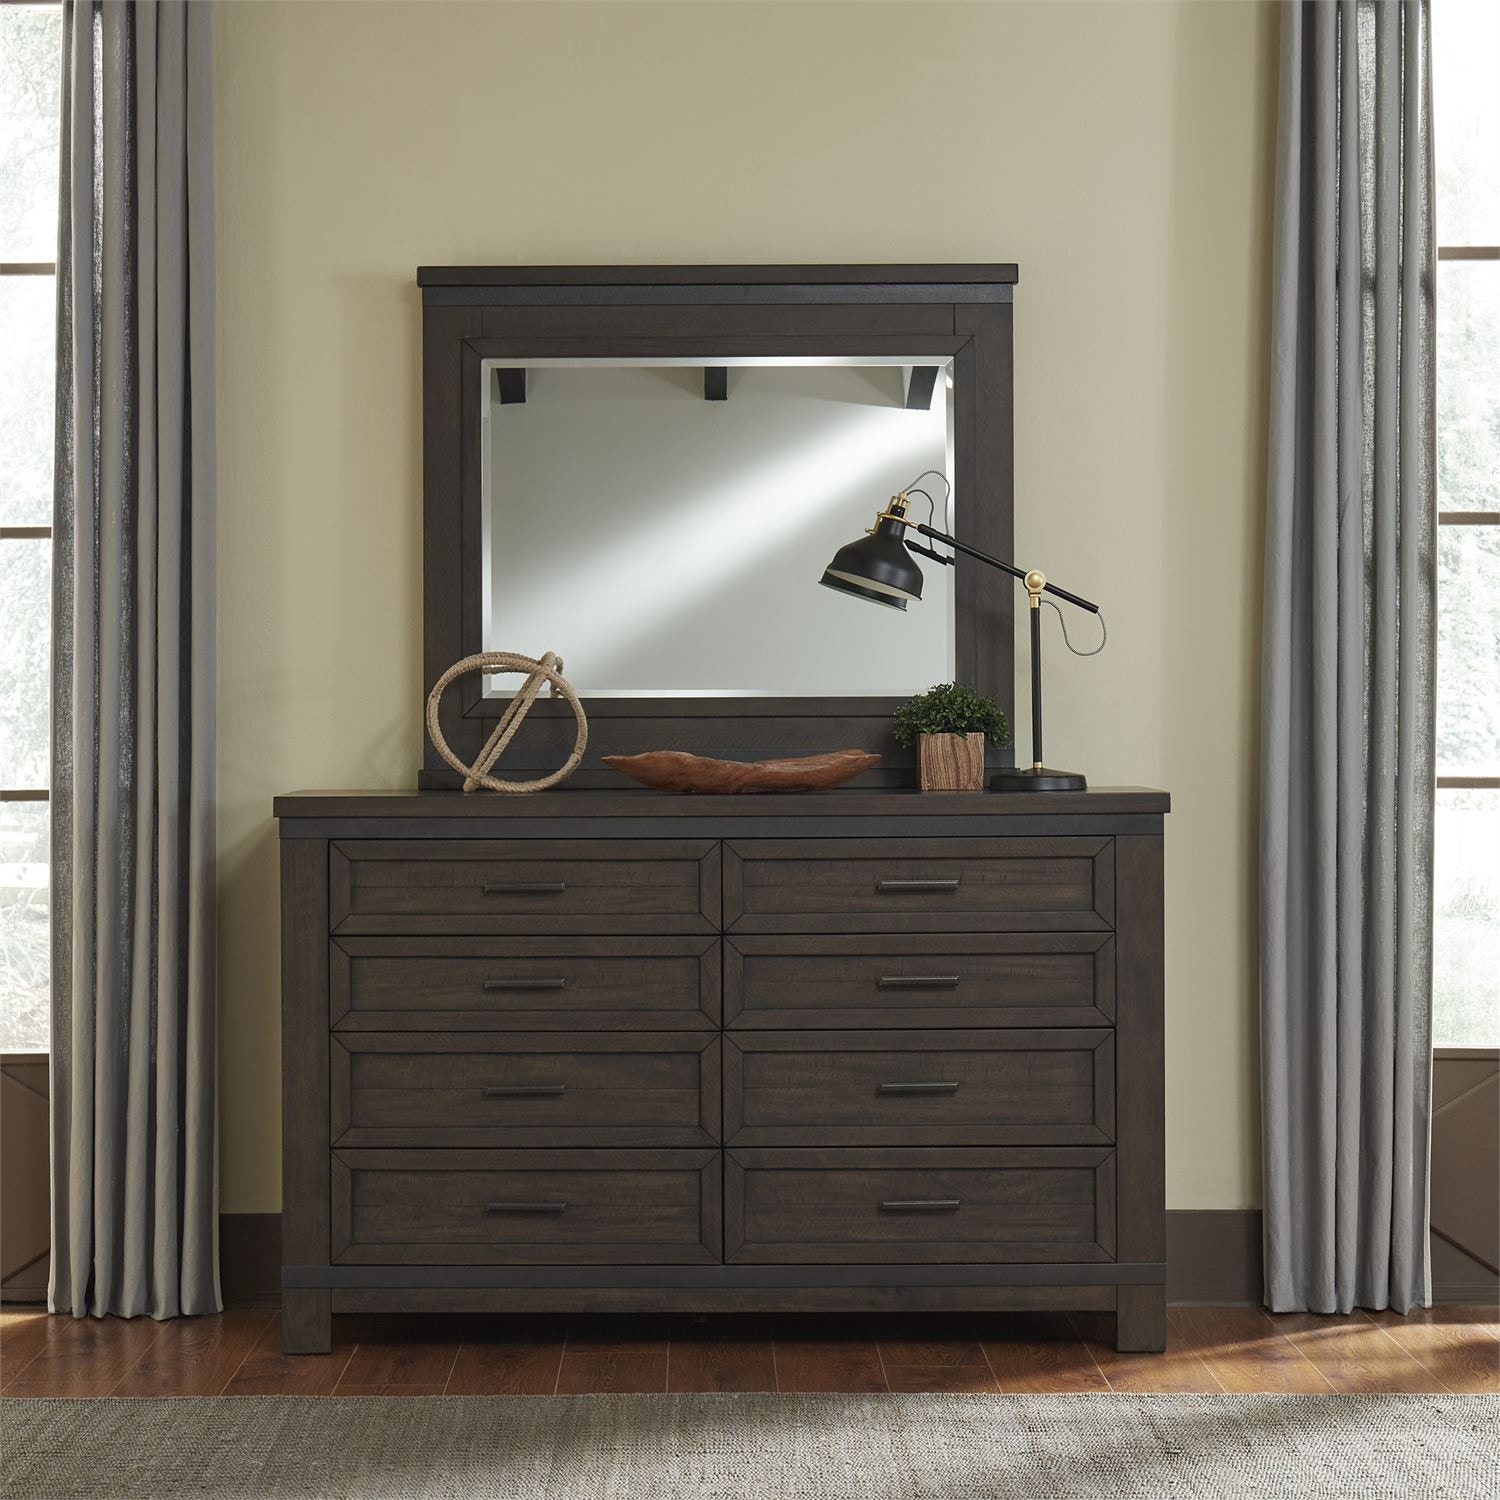 Liberty Furniture Bedroom Dresser And Mirror